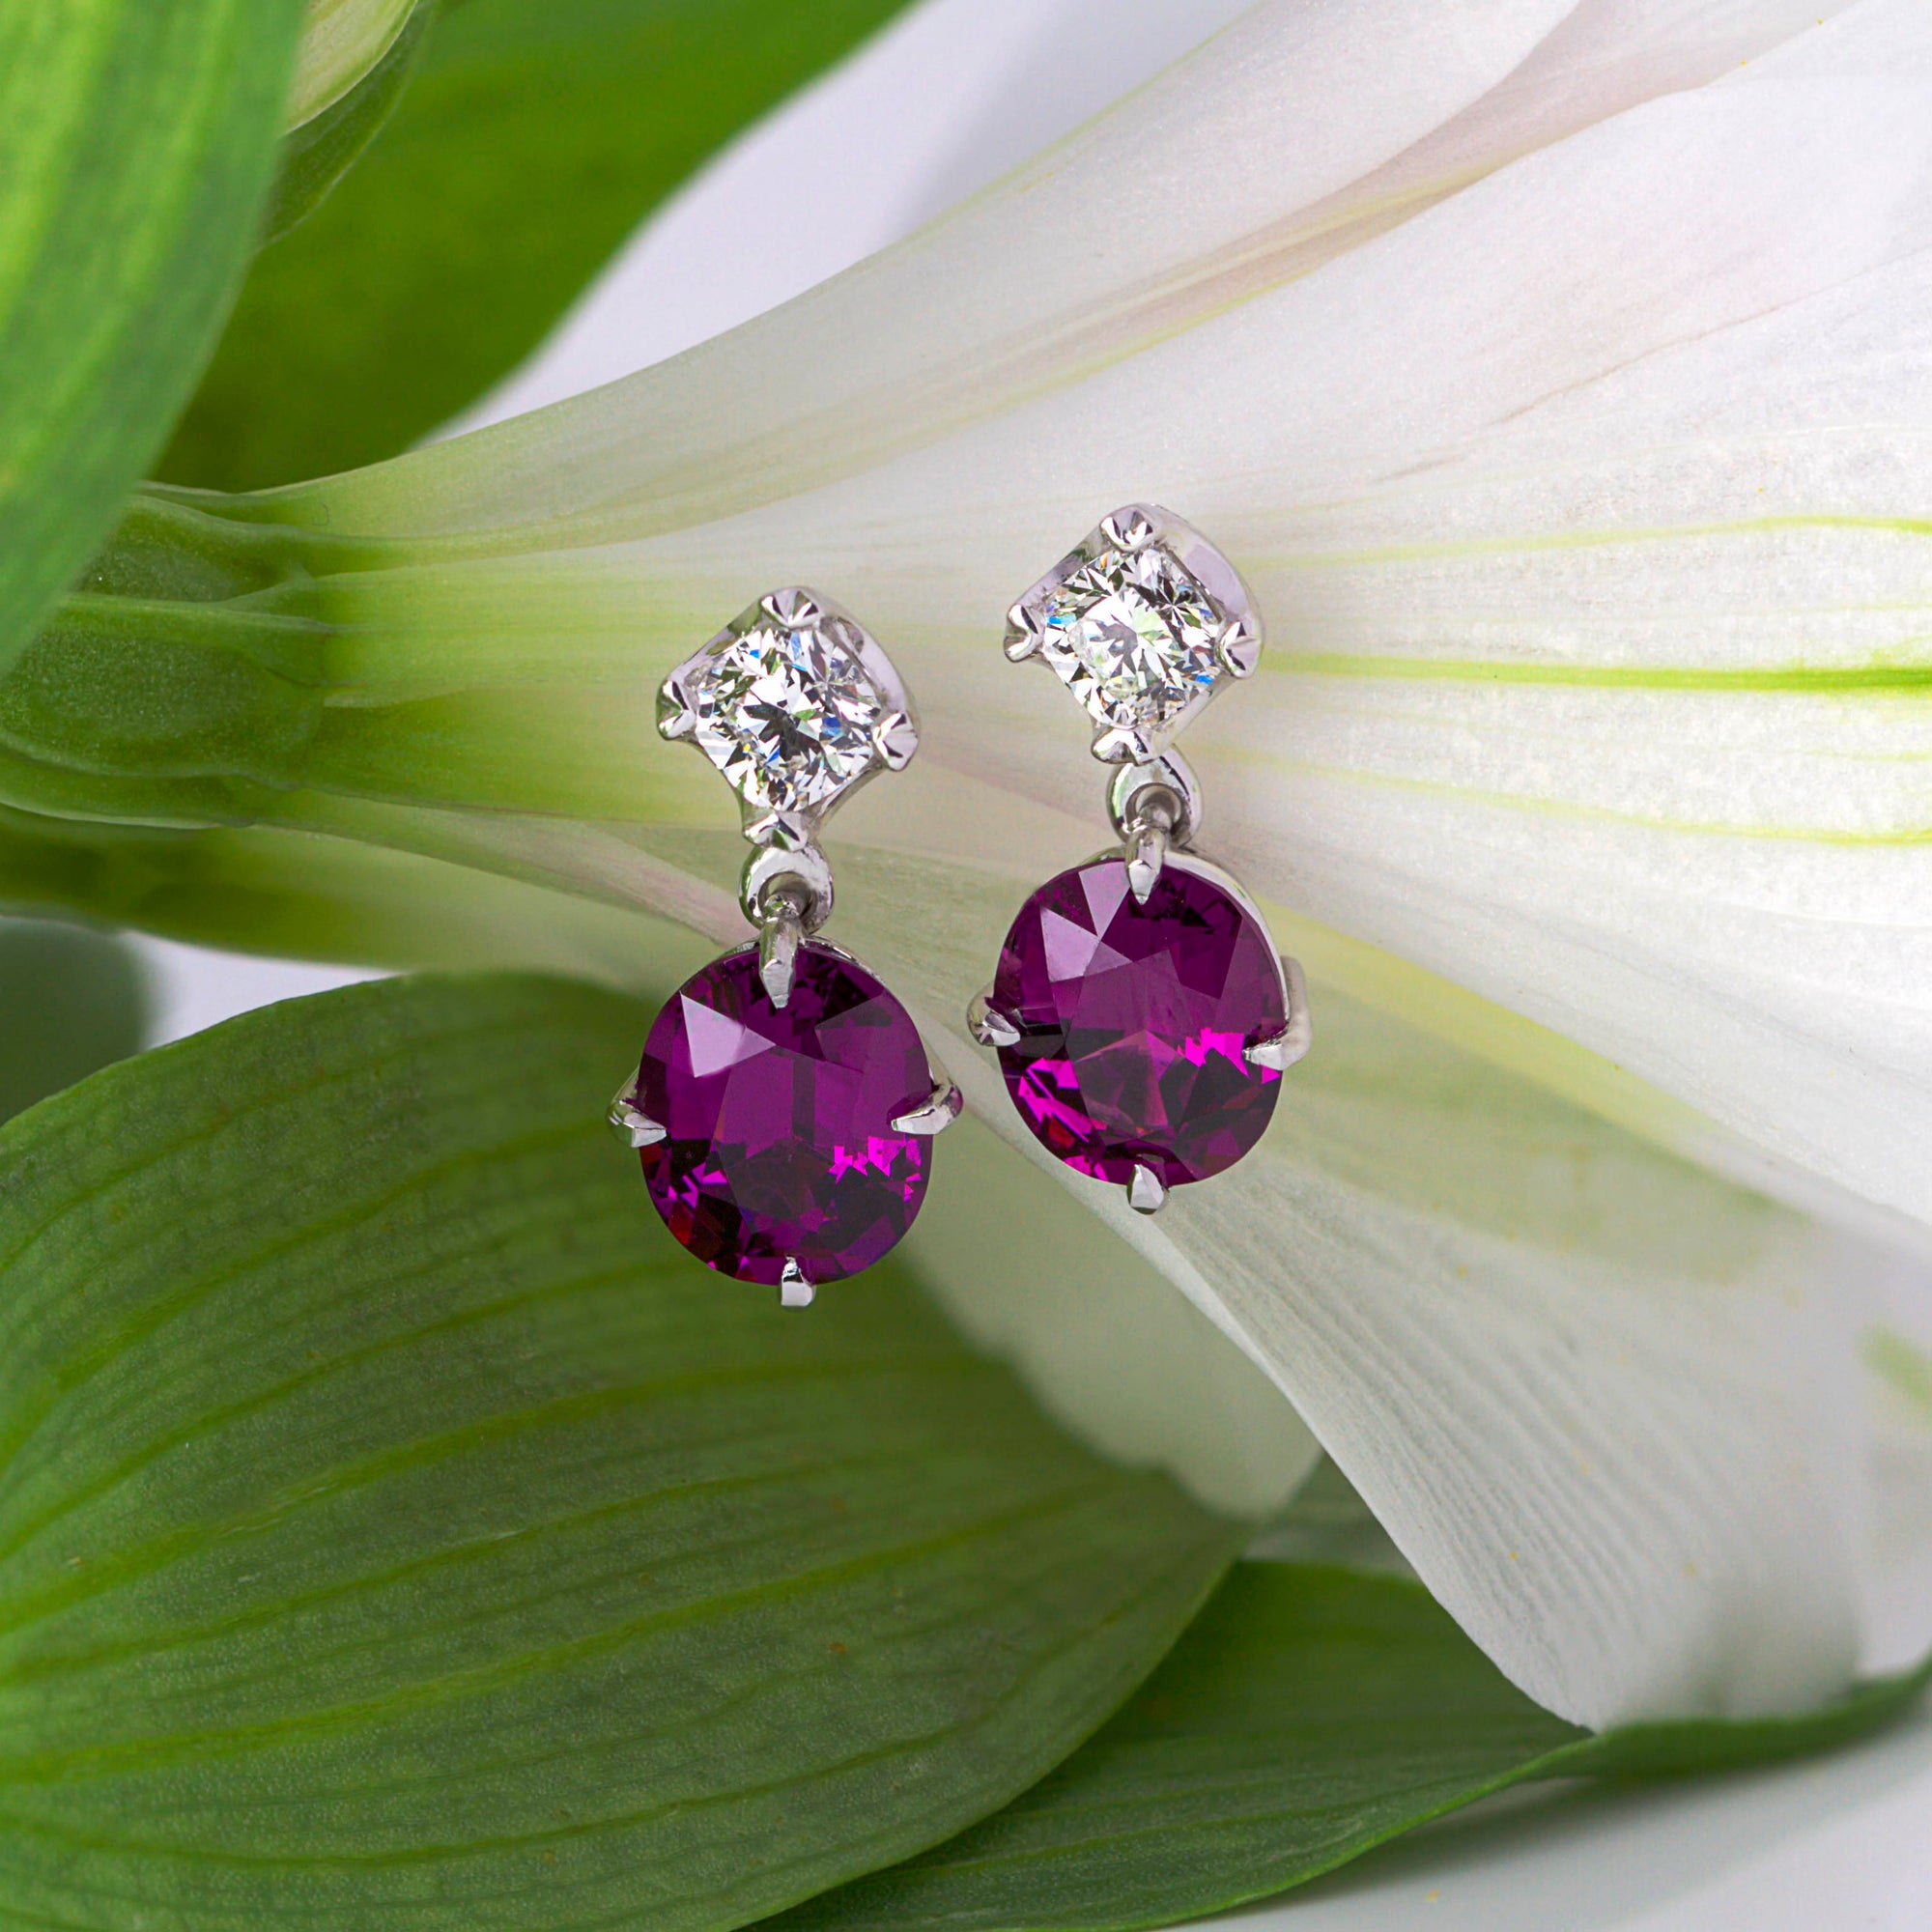 Purple Rhodolite Garnet and Diamond earrings